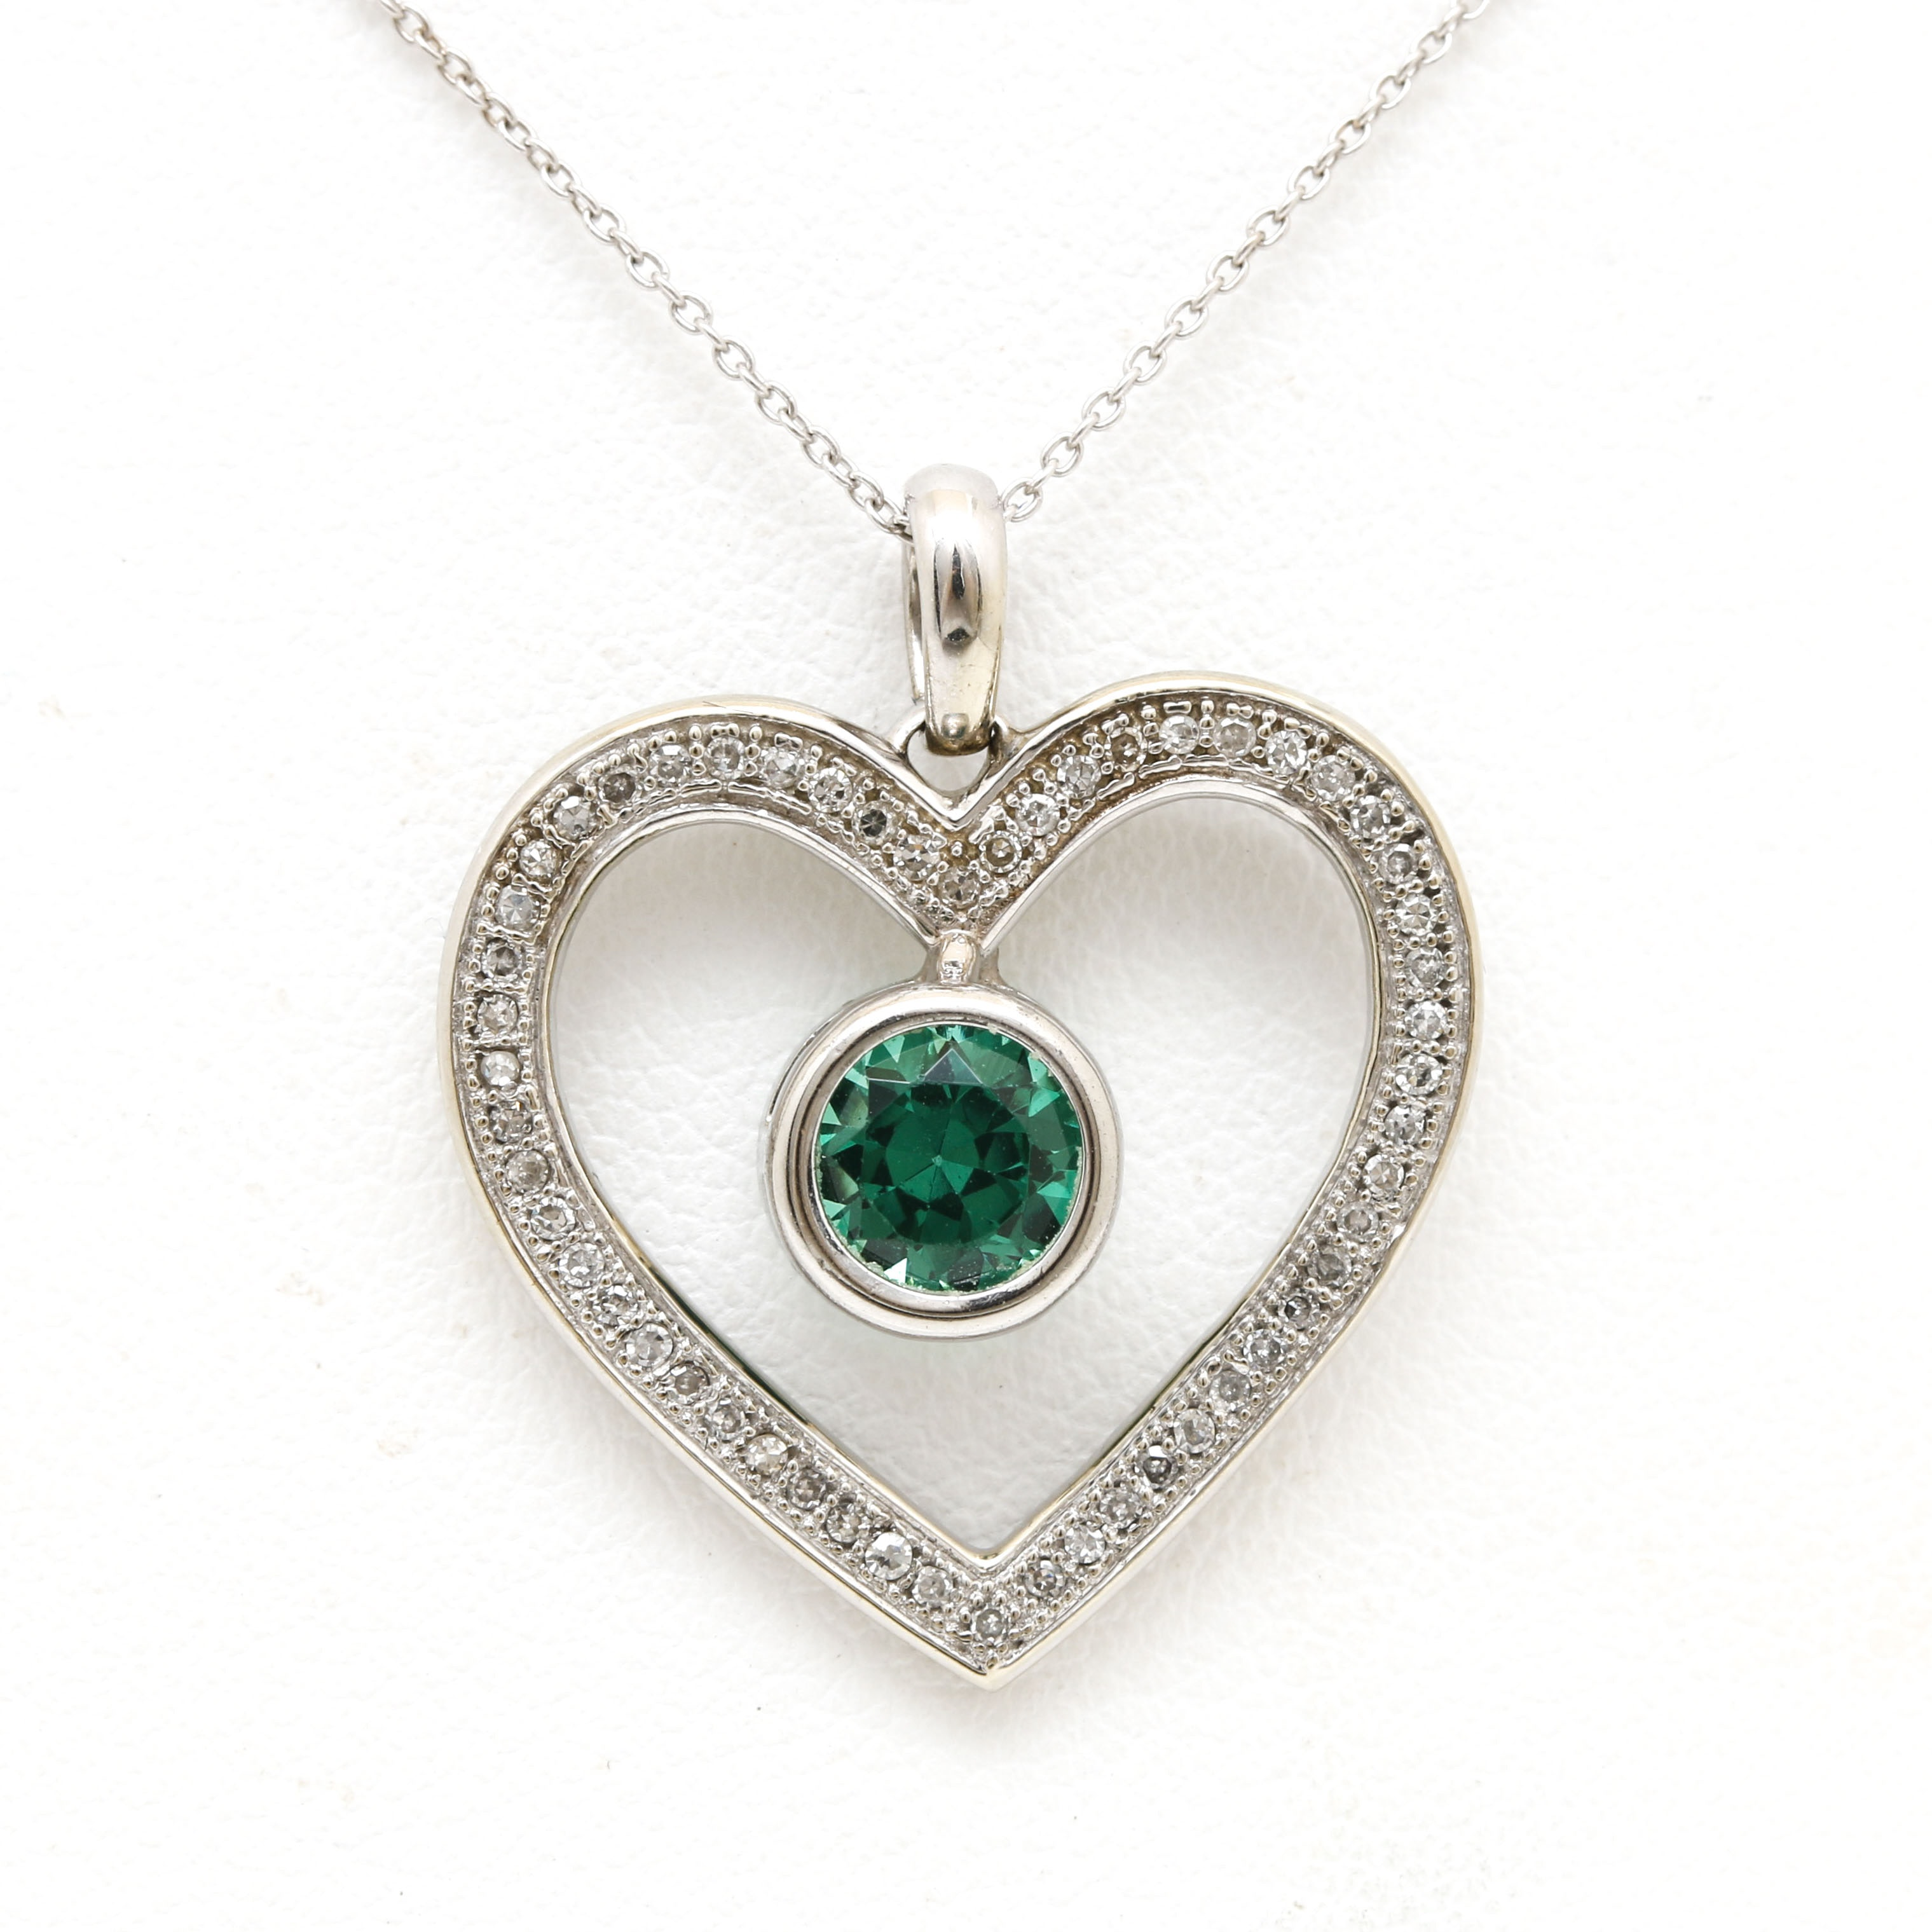 10K and 14K White Gold Spinel and Diamond Heart Pendant Necklace